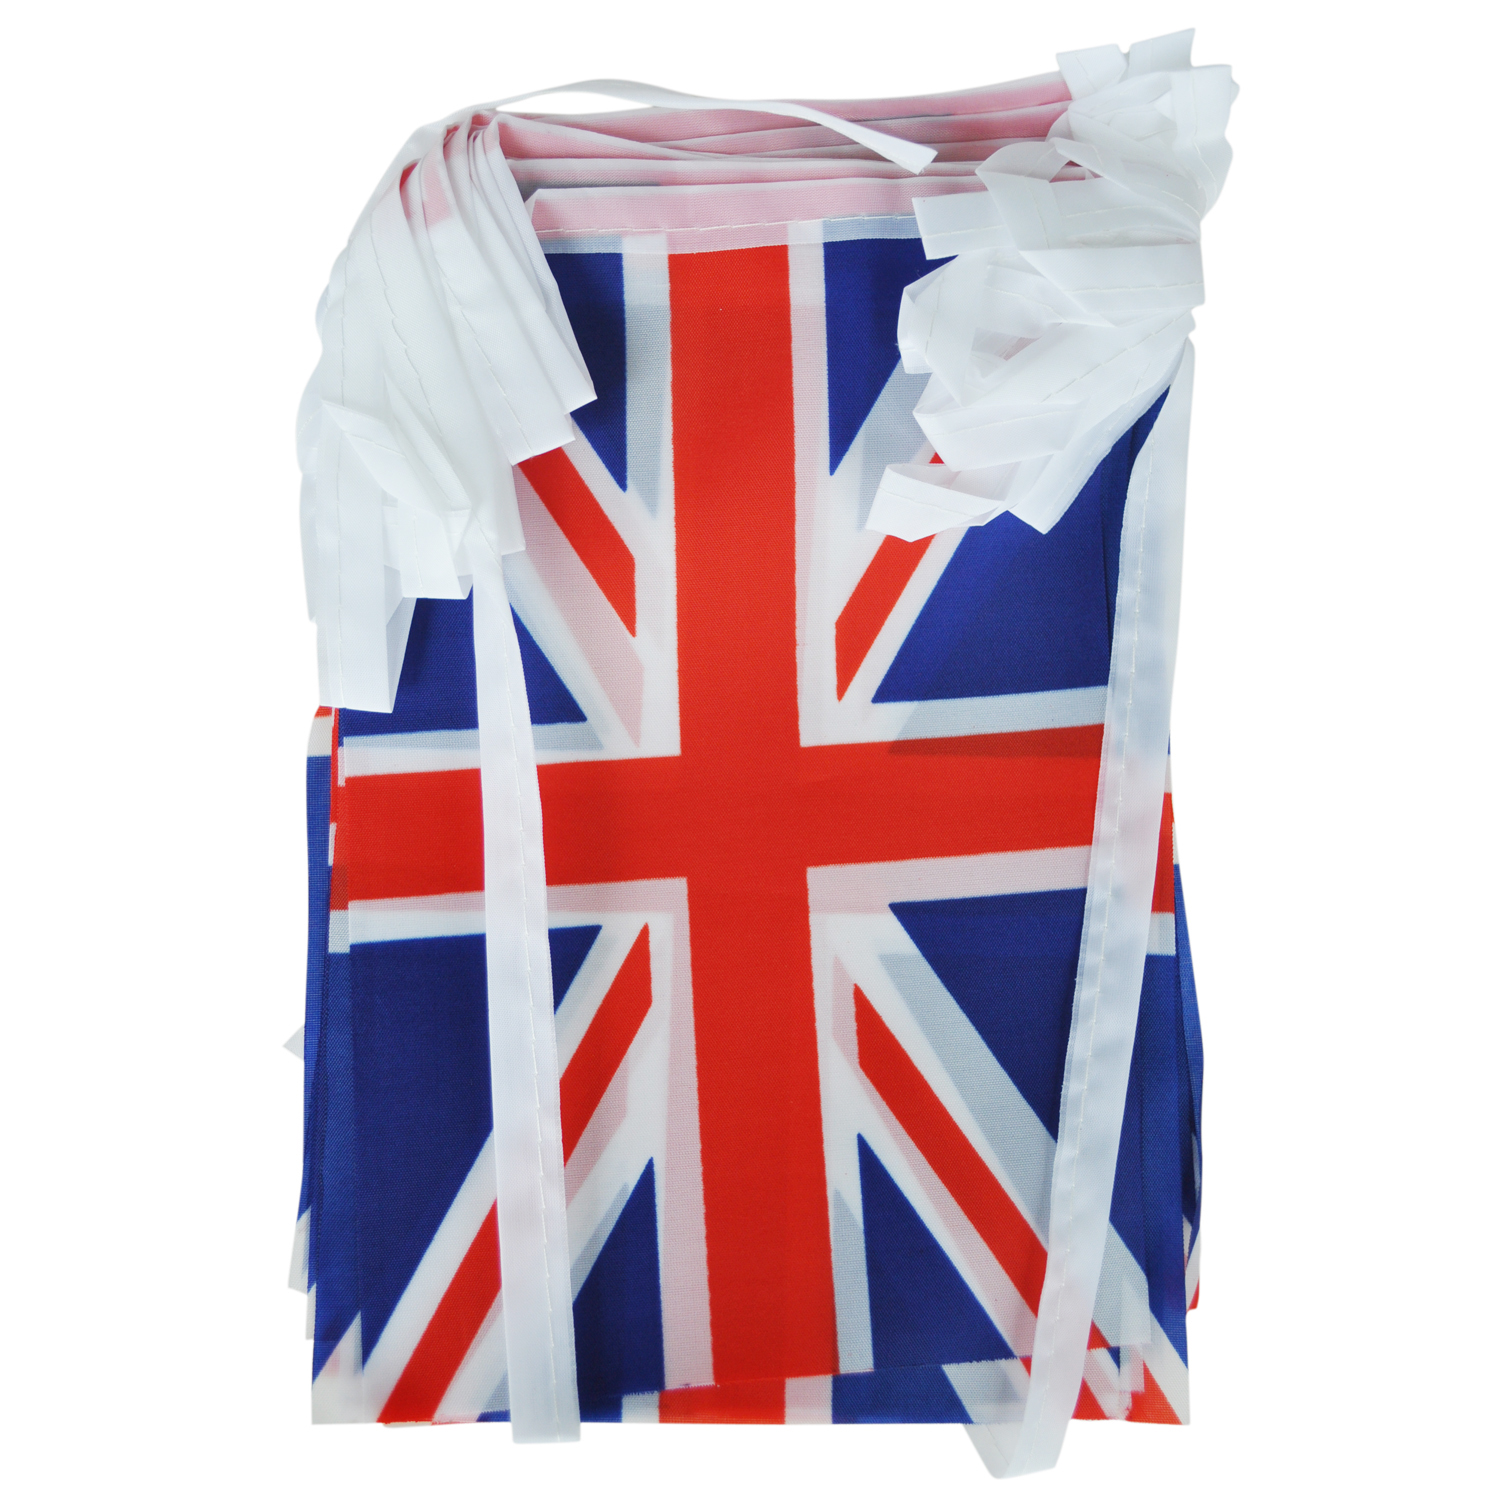 30 Flags United Kingdom National Flag Home Decoration the world Cup Olympic Game Union Jack UK British Flag England Country flag